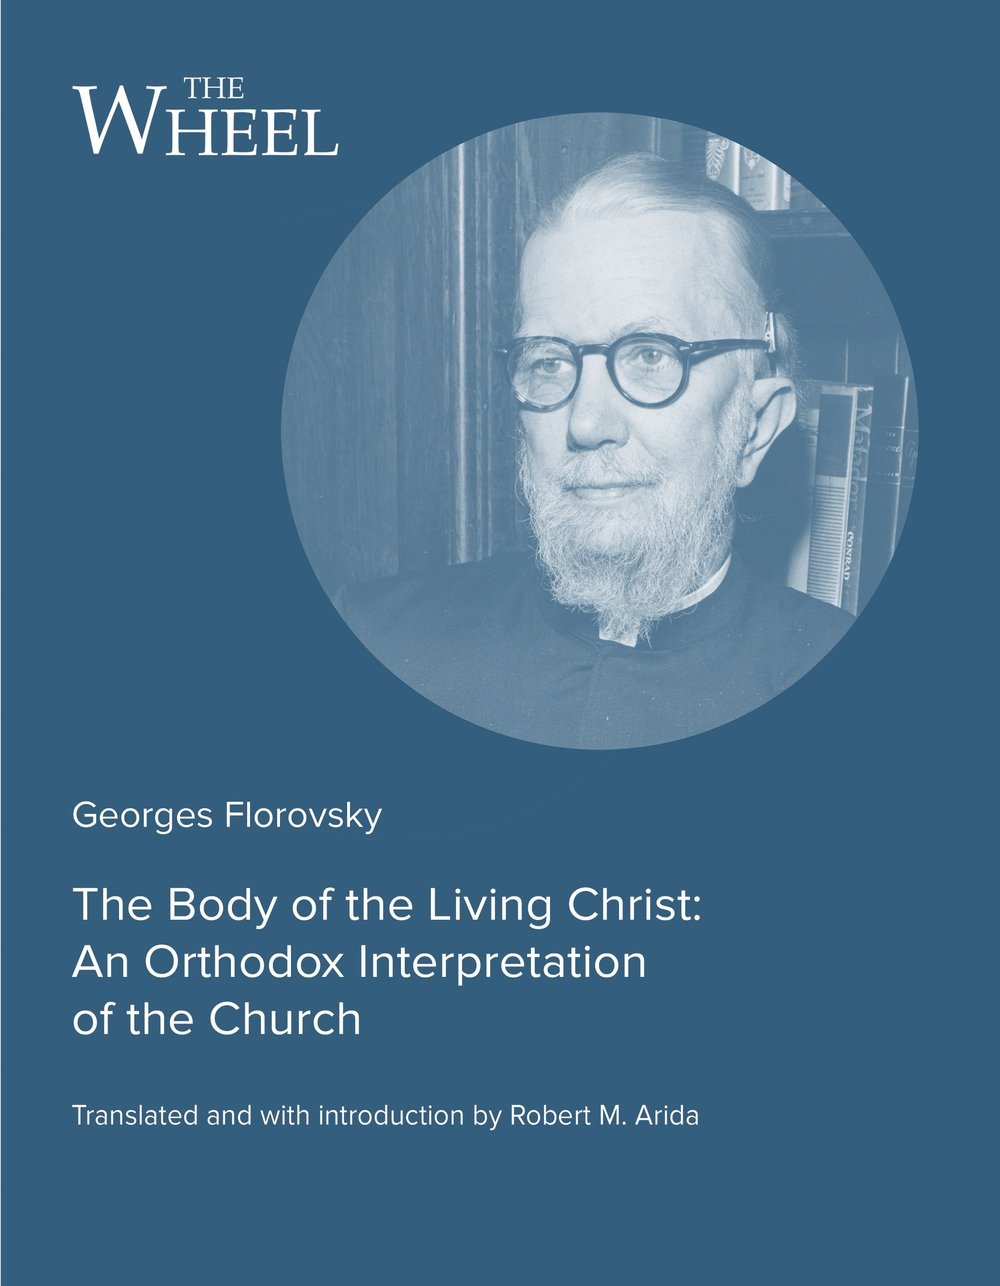 florovsky book cover.jpg